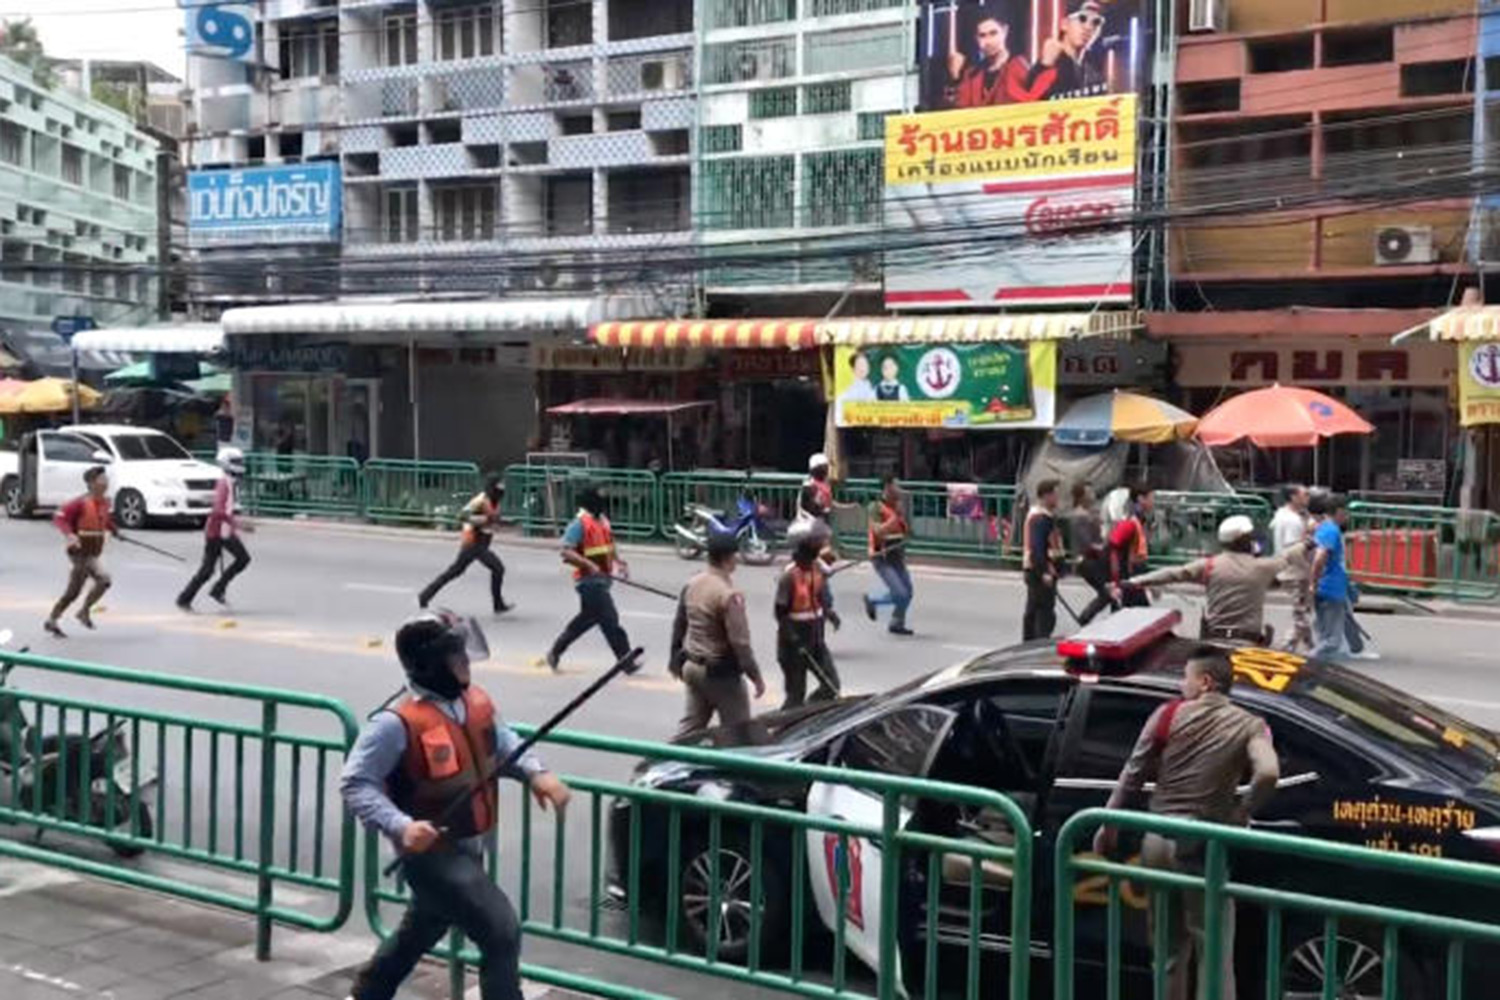 Police officers arrive to break up a violent brawl between members of two rival motorcycle-taxi queues on Sukhumvit Soi 103/1-2 in Bang Na district of Bangkok on Saturday morning. (Screen capture from clip by Salonaio Chakonkun Facebook page)